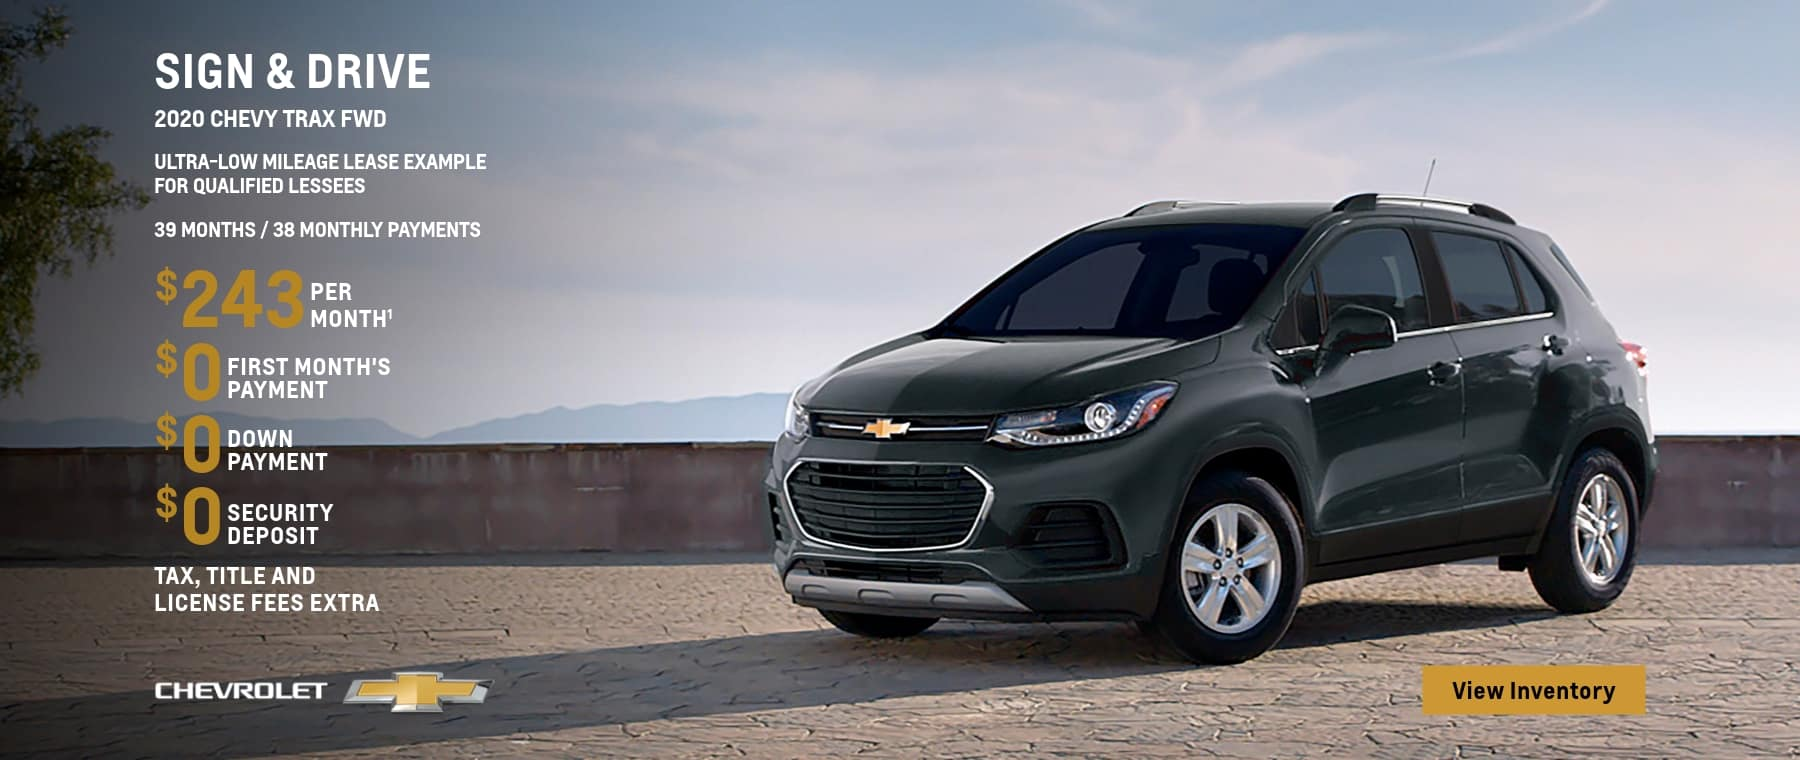 2020 Trax LT FWD Ultra-Low Mileage Lease Example for Qualified Lessees $243 per month.